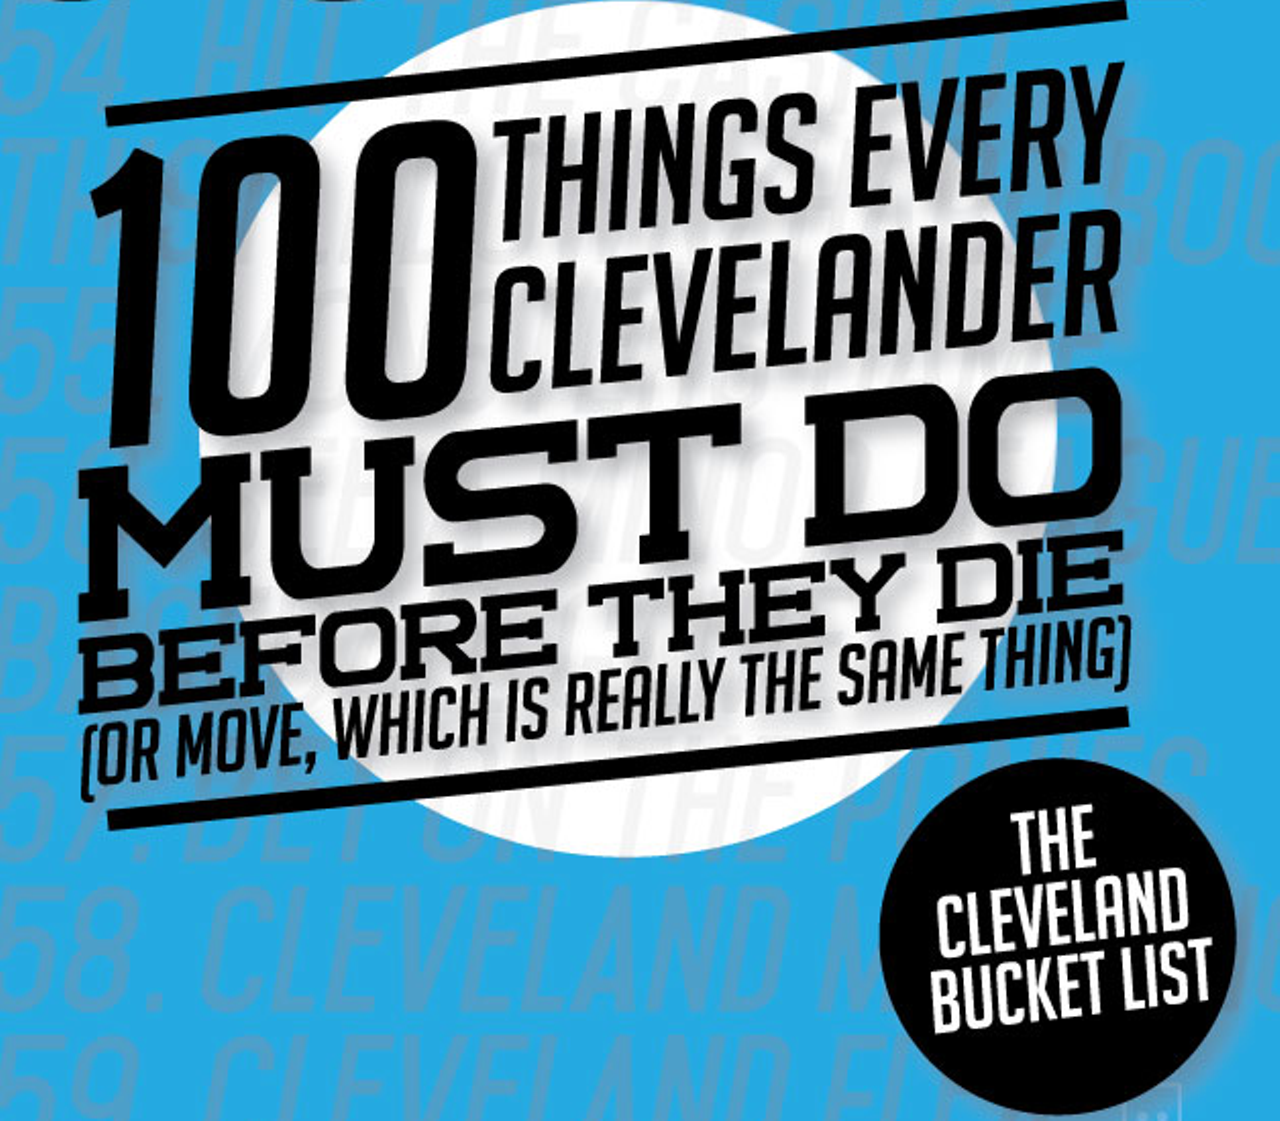 The Cleveland Bucket List | News Features | Cleveland Scene